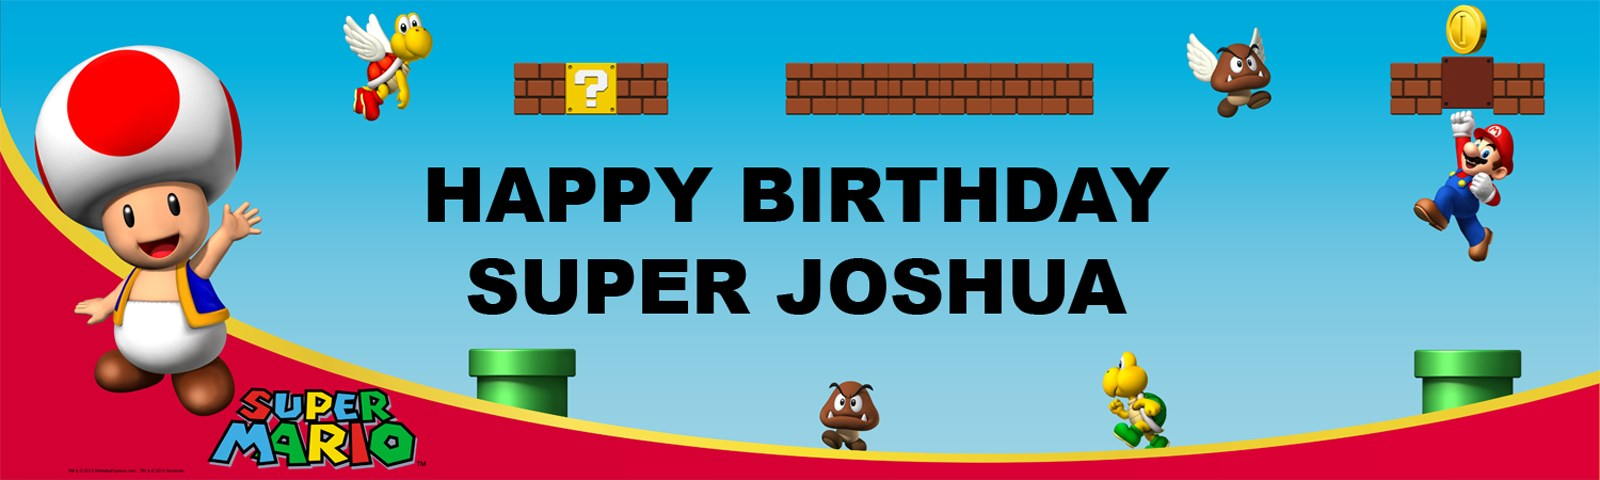 Super Mario Bros. - Toad Personalized Birthday Banner